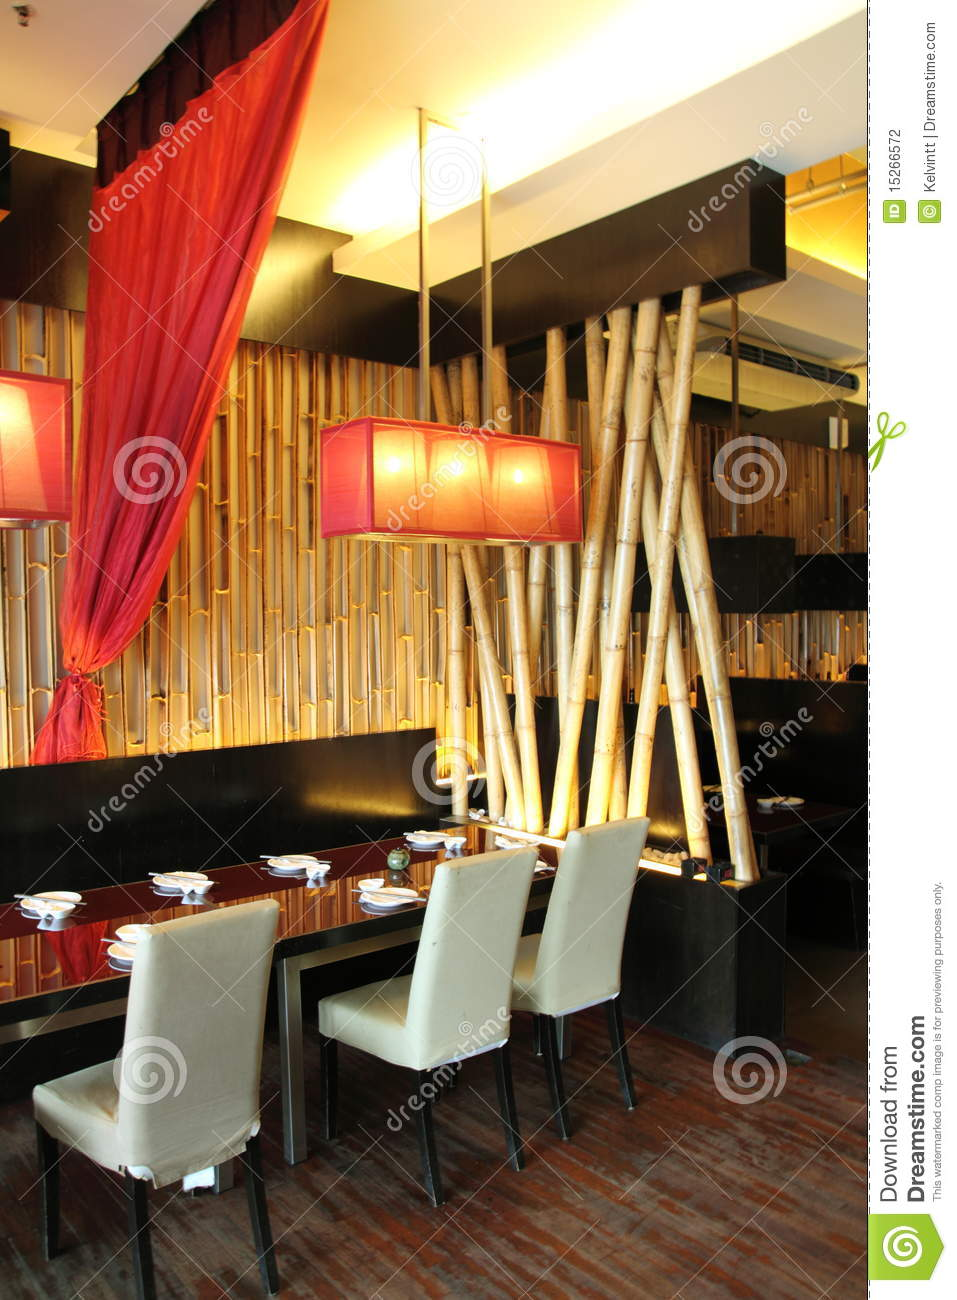 6 Chair Dining Table Restaurant Interior Design Stock Photography - Image: 15266572